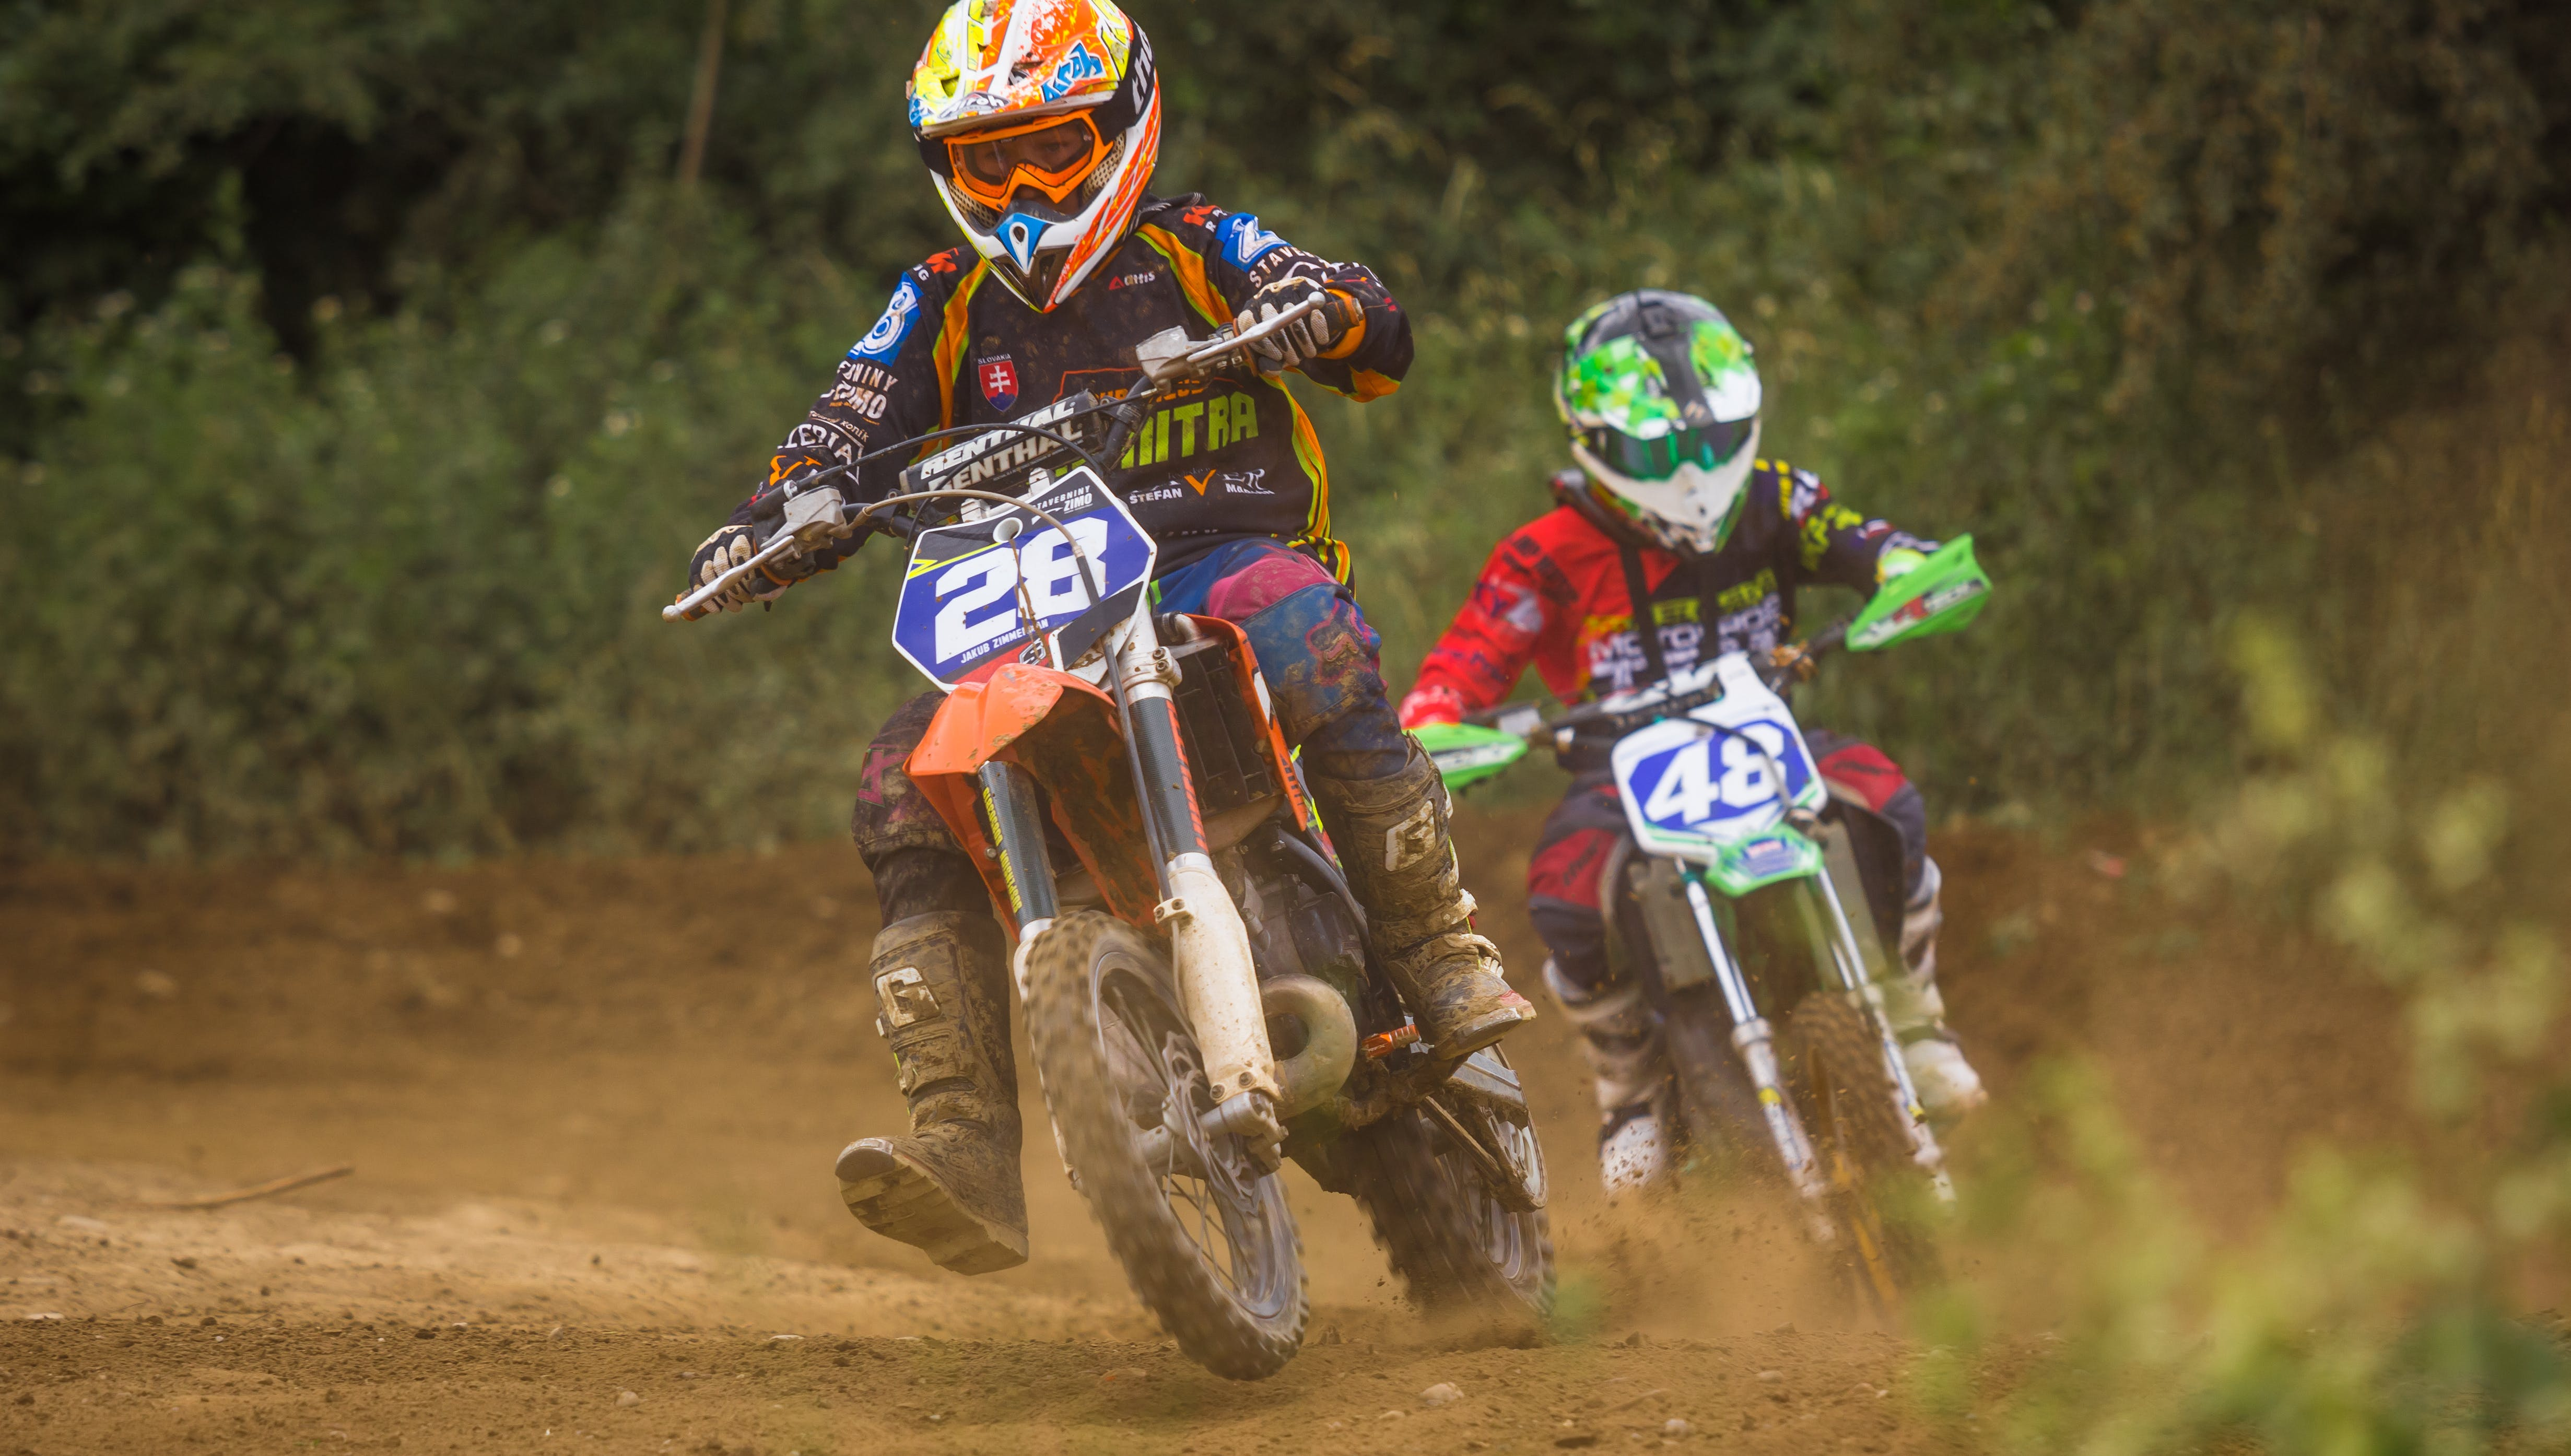 Two Dirt Bikers